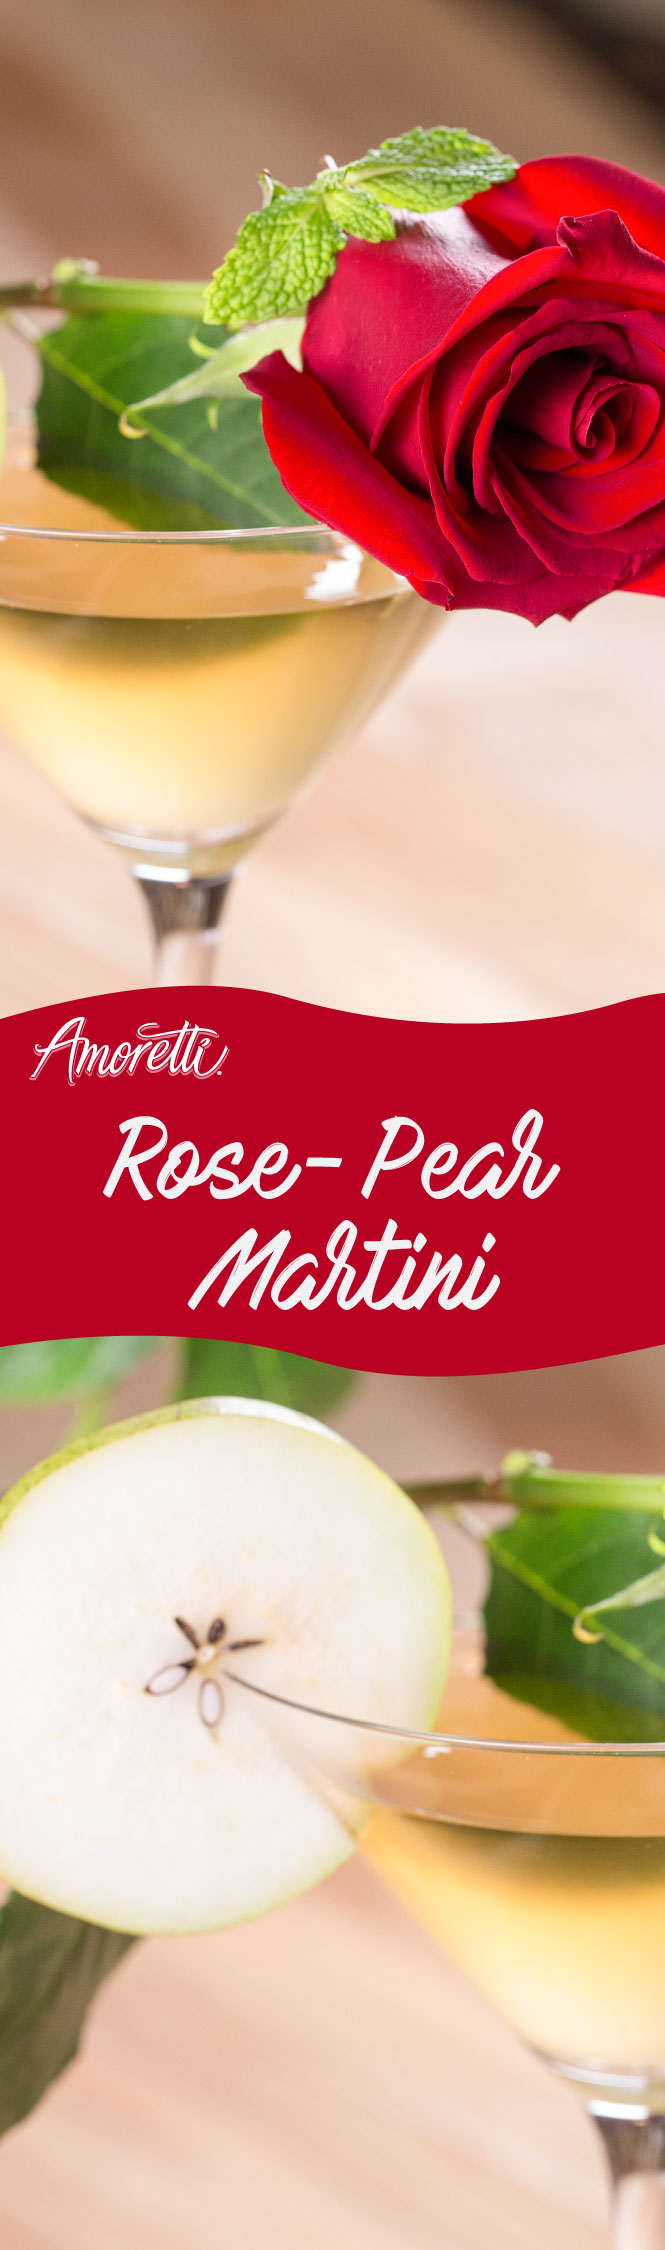 Looking for a cocktail to impress your date? Try our Rose-Pear Martini!